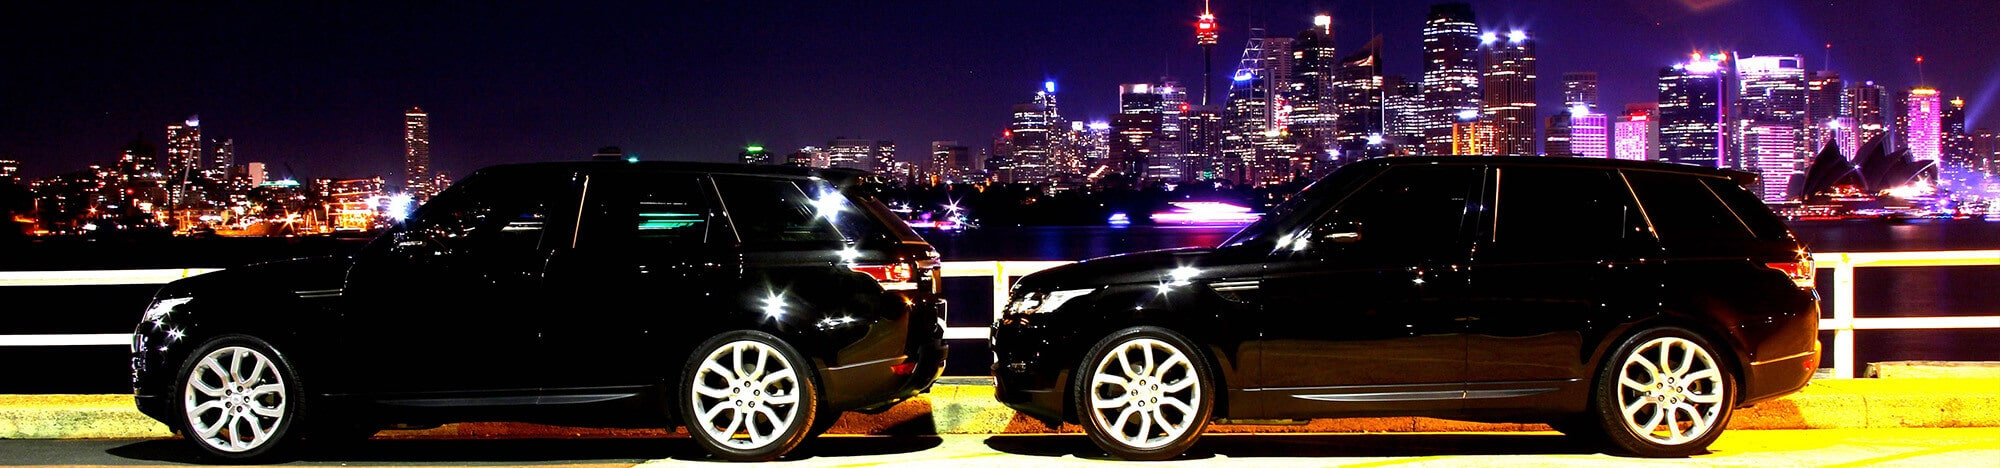 About Luxury Car Hire Australia & New Zealand | Marquee Limousines